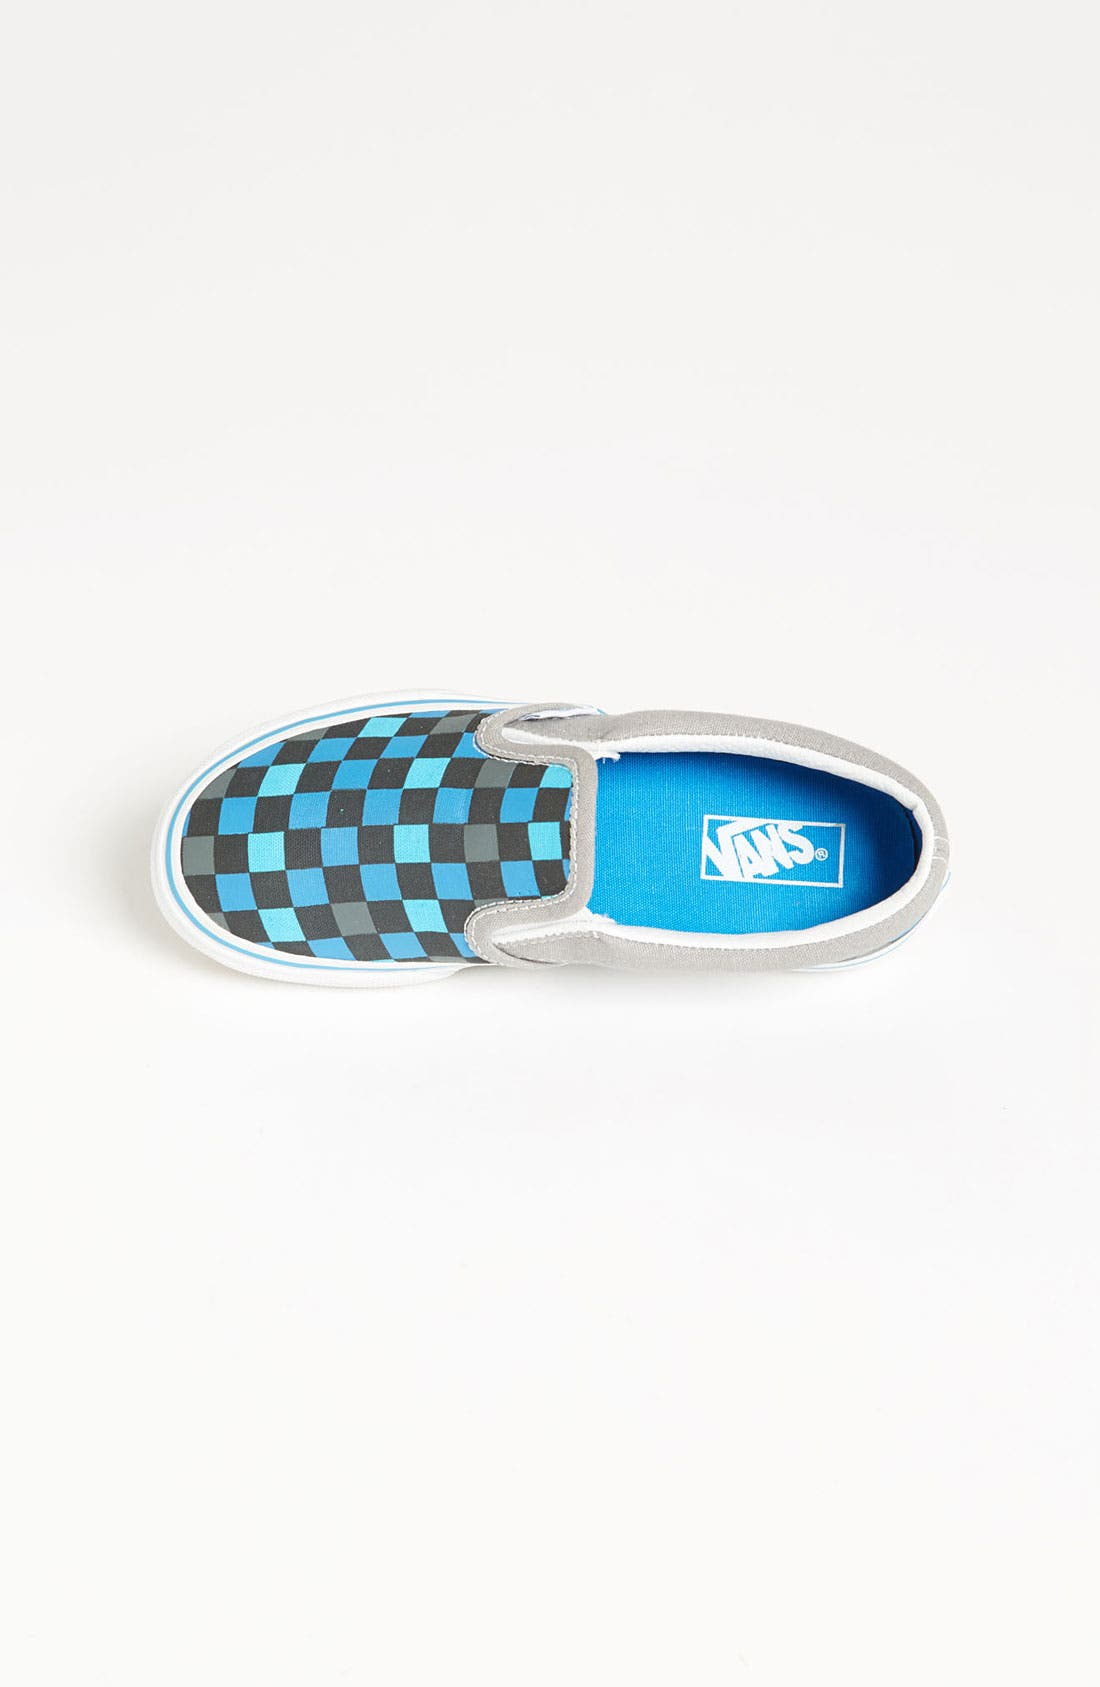 Alternate Image 3  - Vans 'Multi Check' Slip-On (Walker, Toddler, Little Kid & Big Kid)